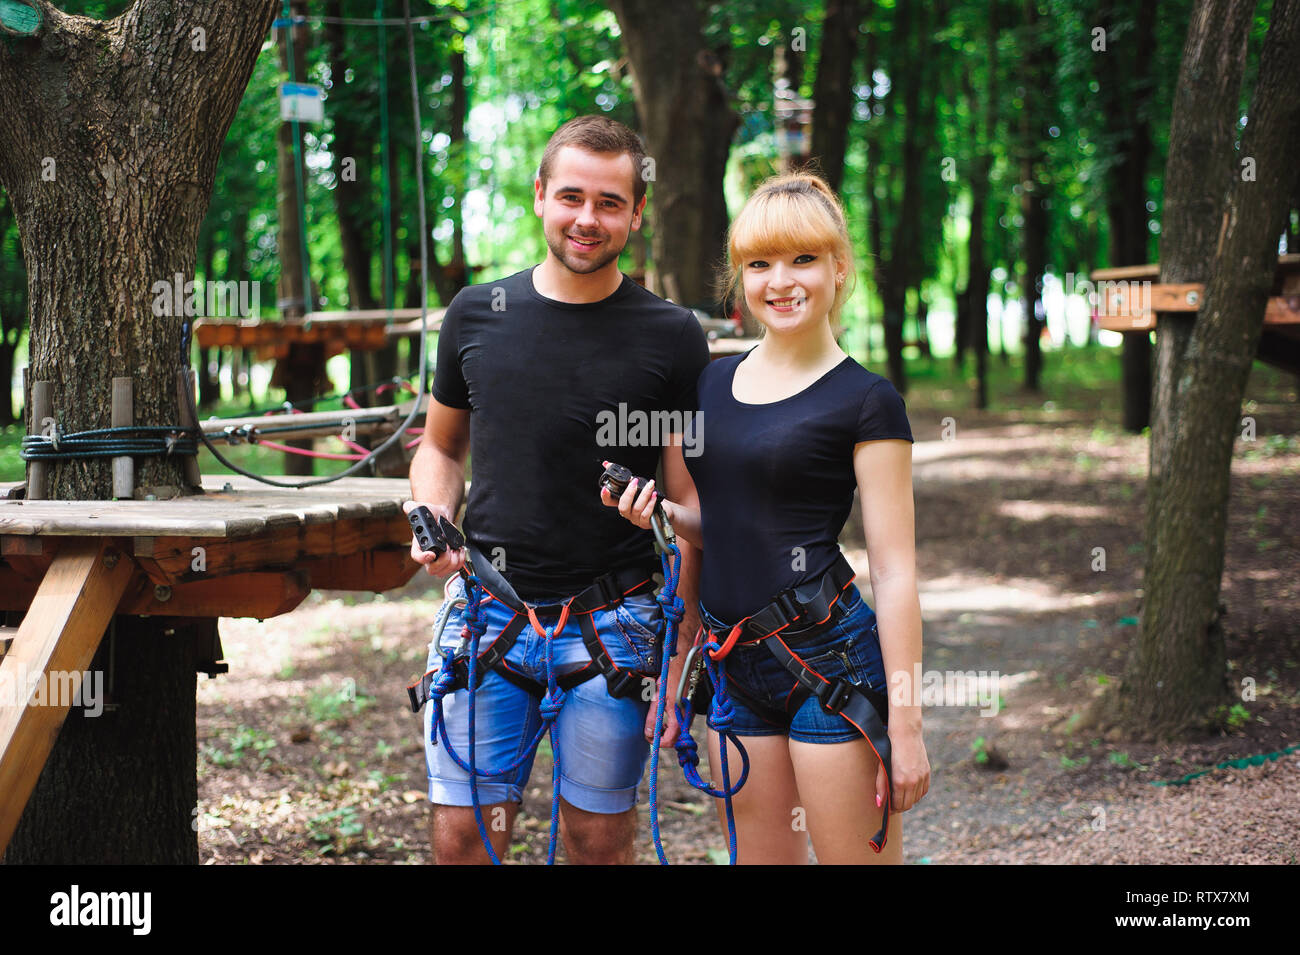 adventure climbing high wire park - hiking in the rope park two young people in safety equipment. - Stock Image